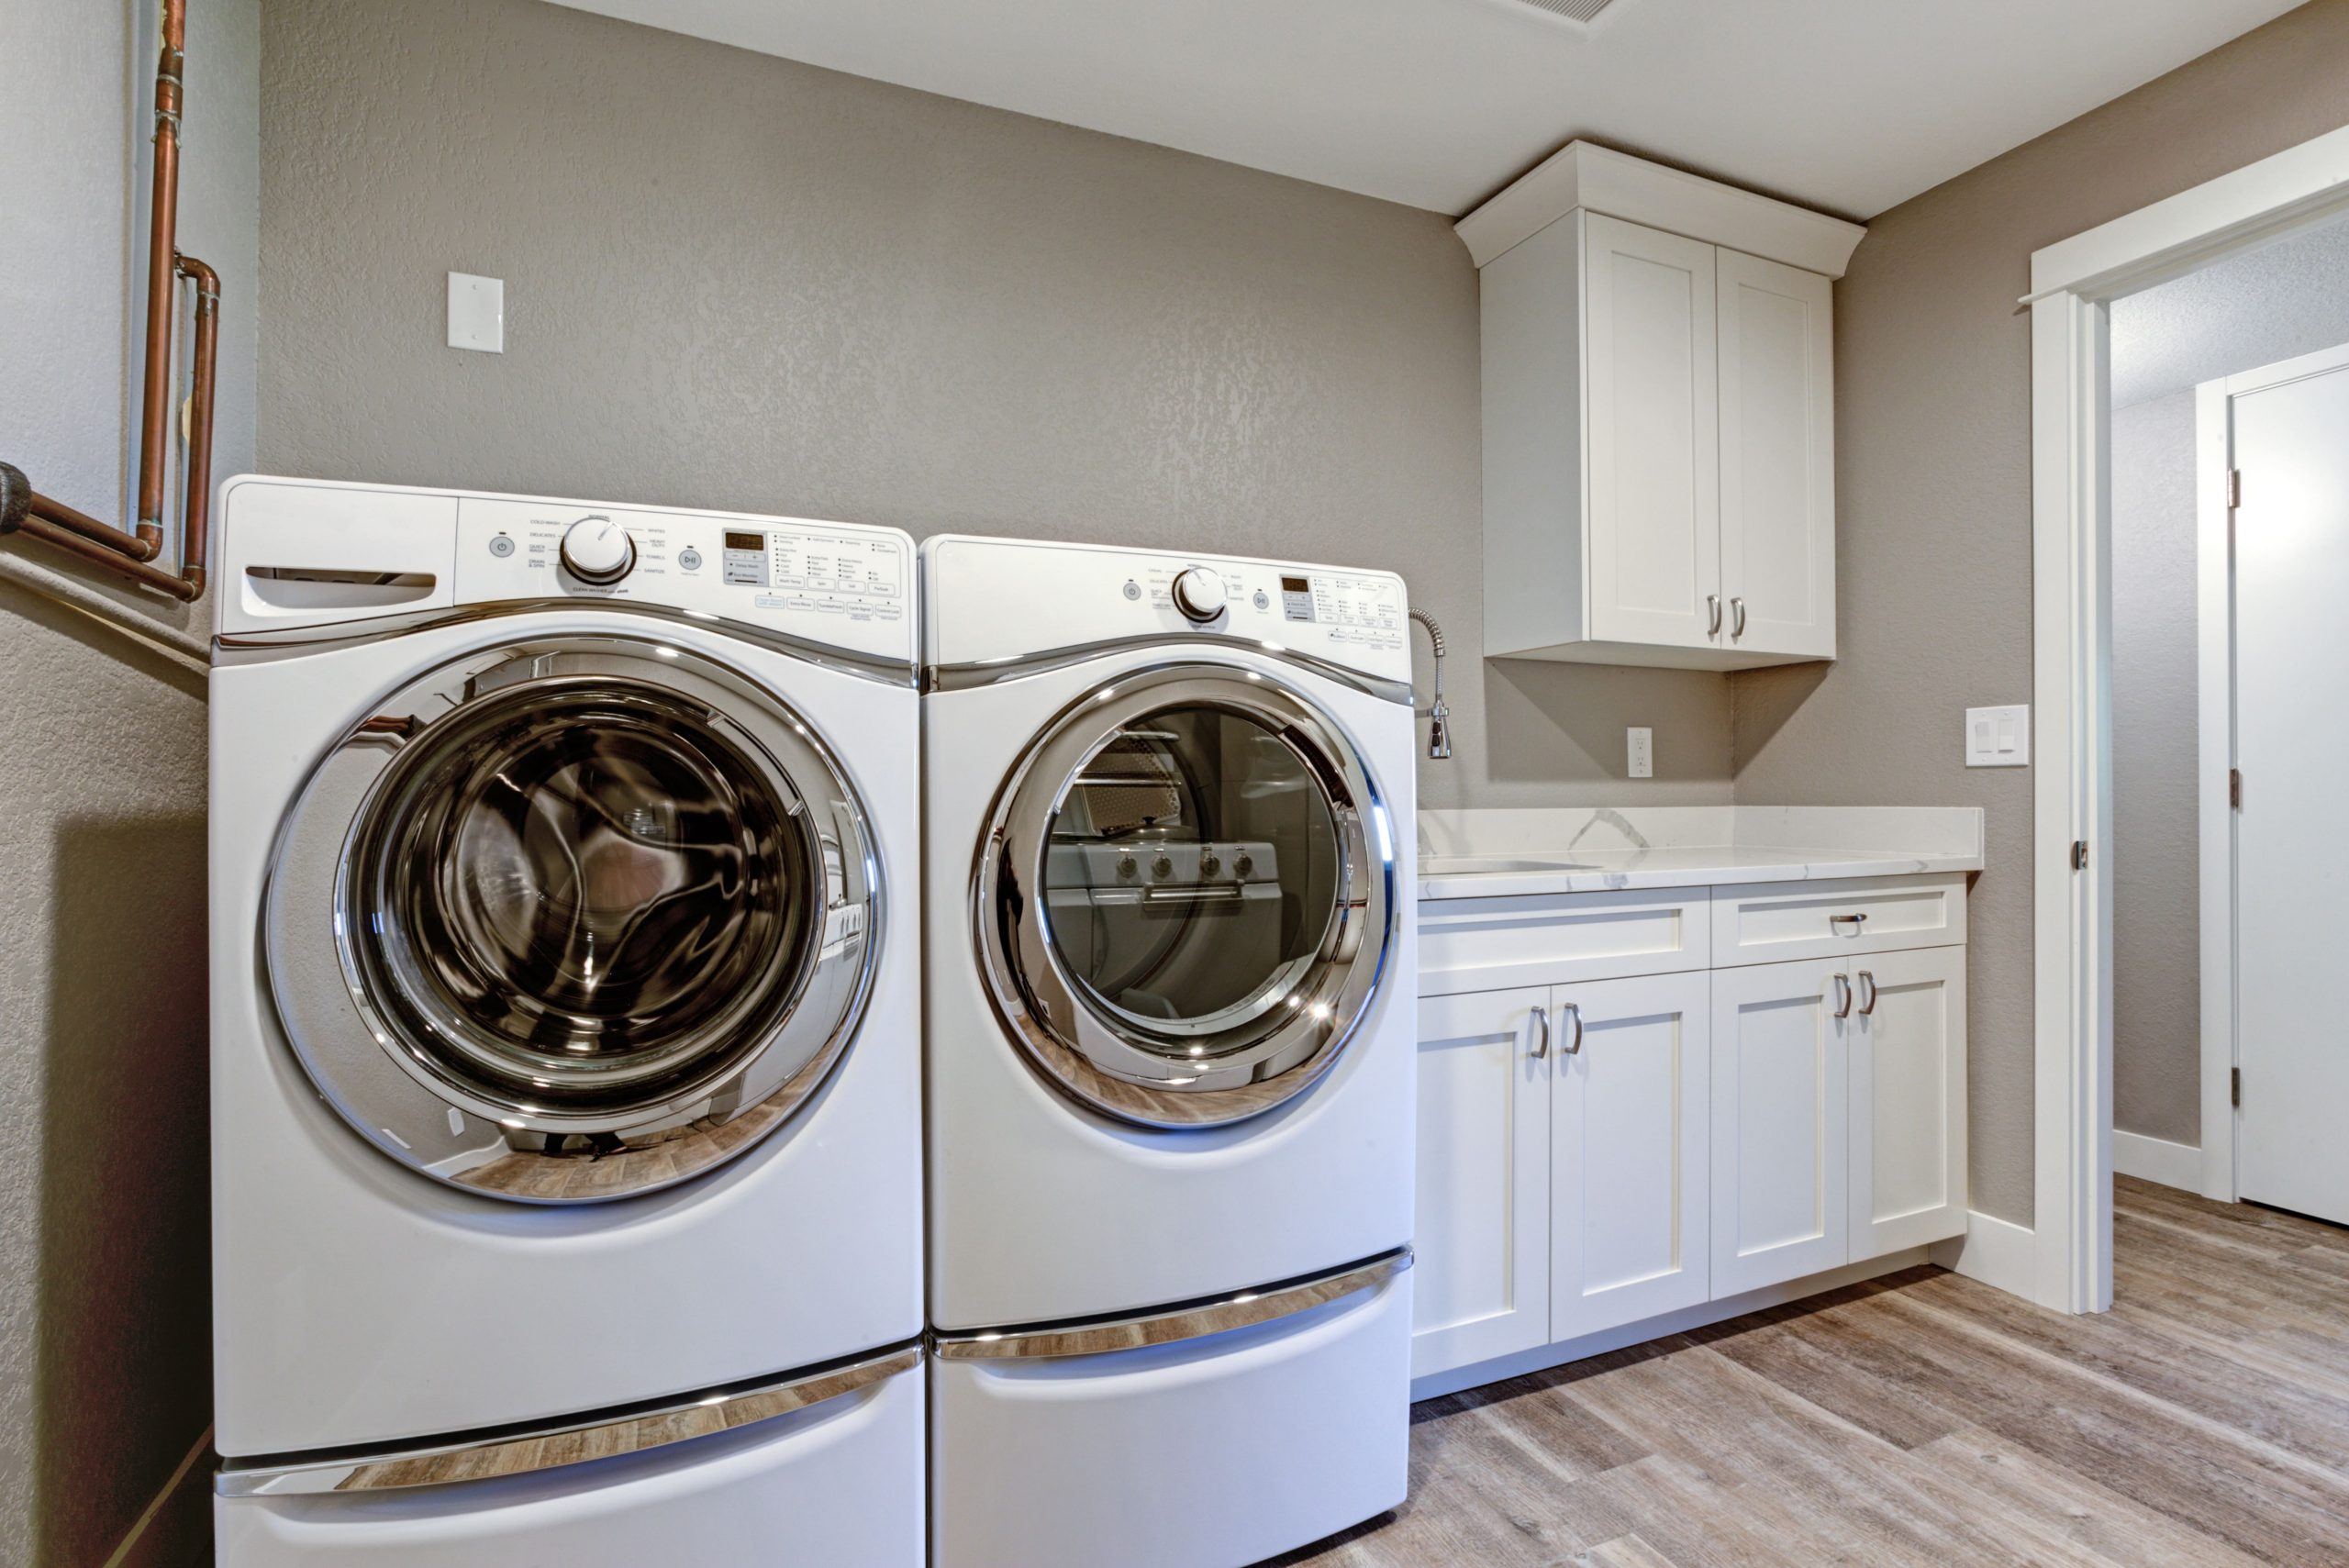 blog image of apartment washer and dryer units